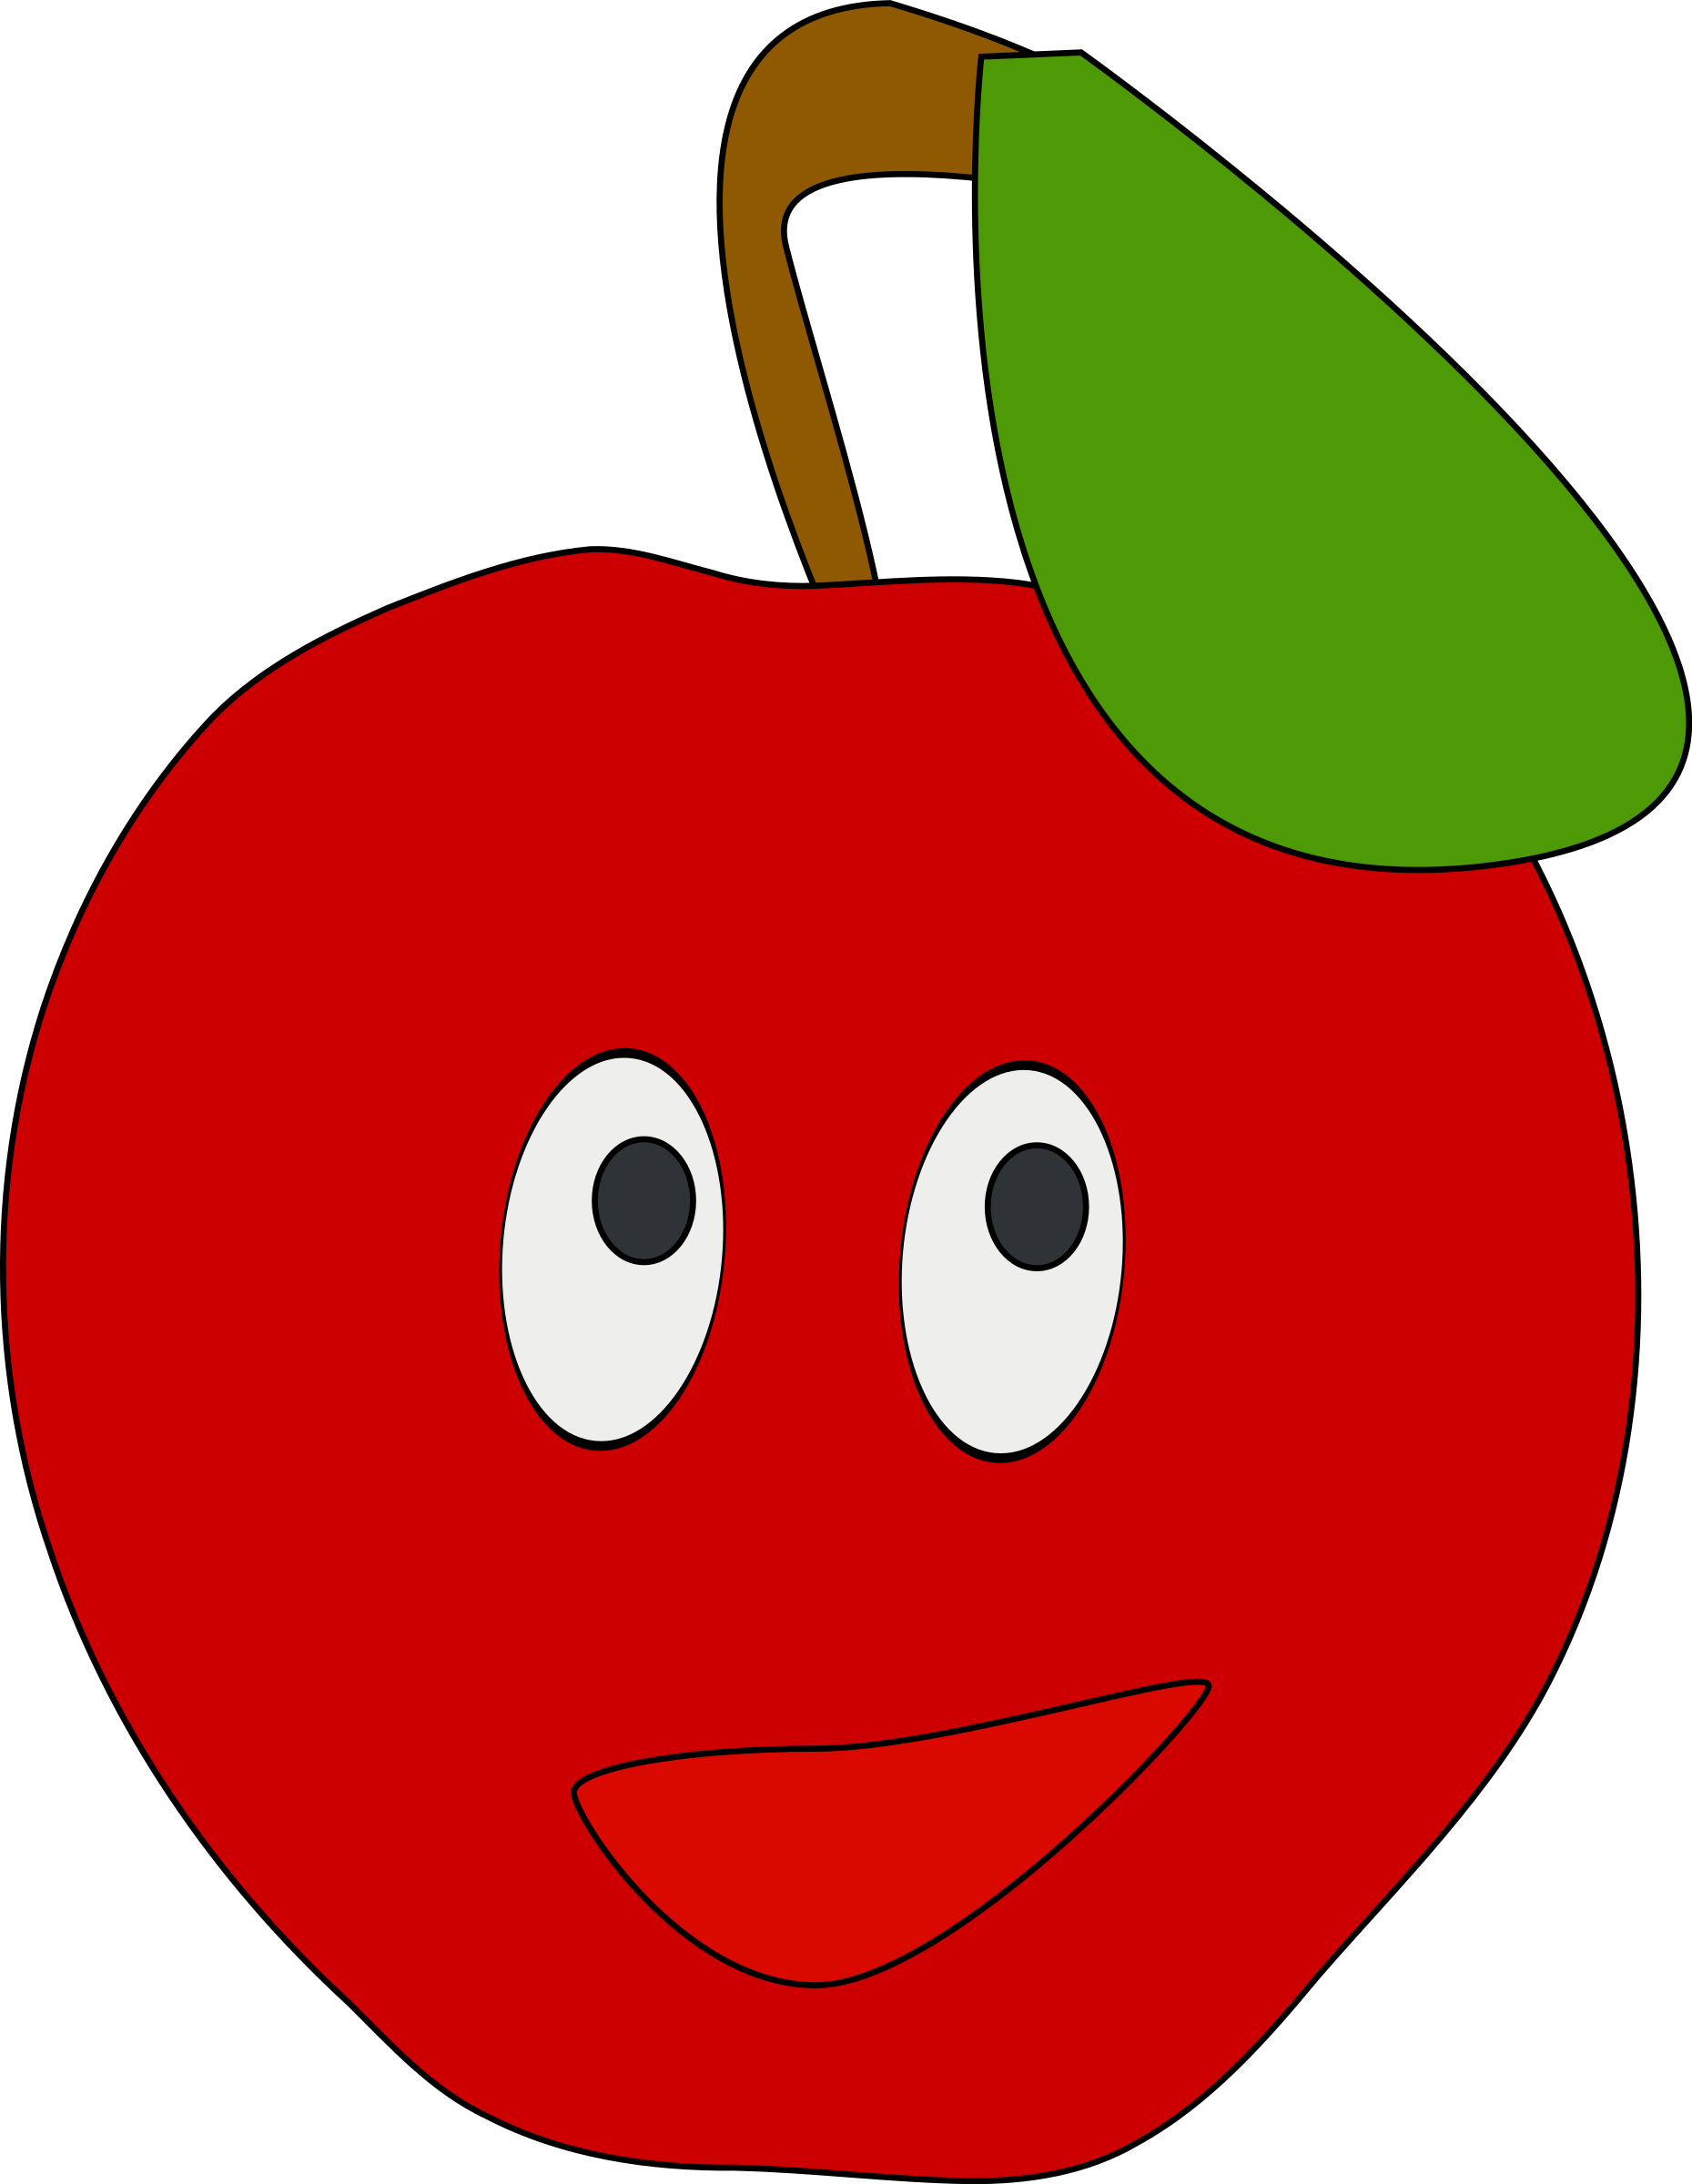 smiling apple by mcol